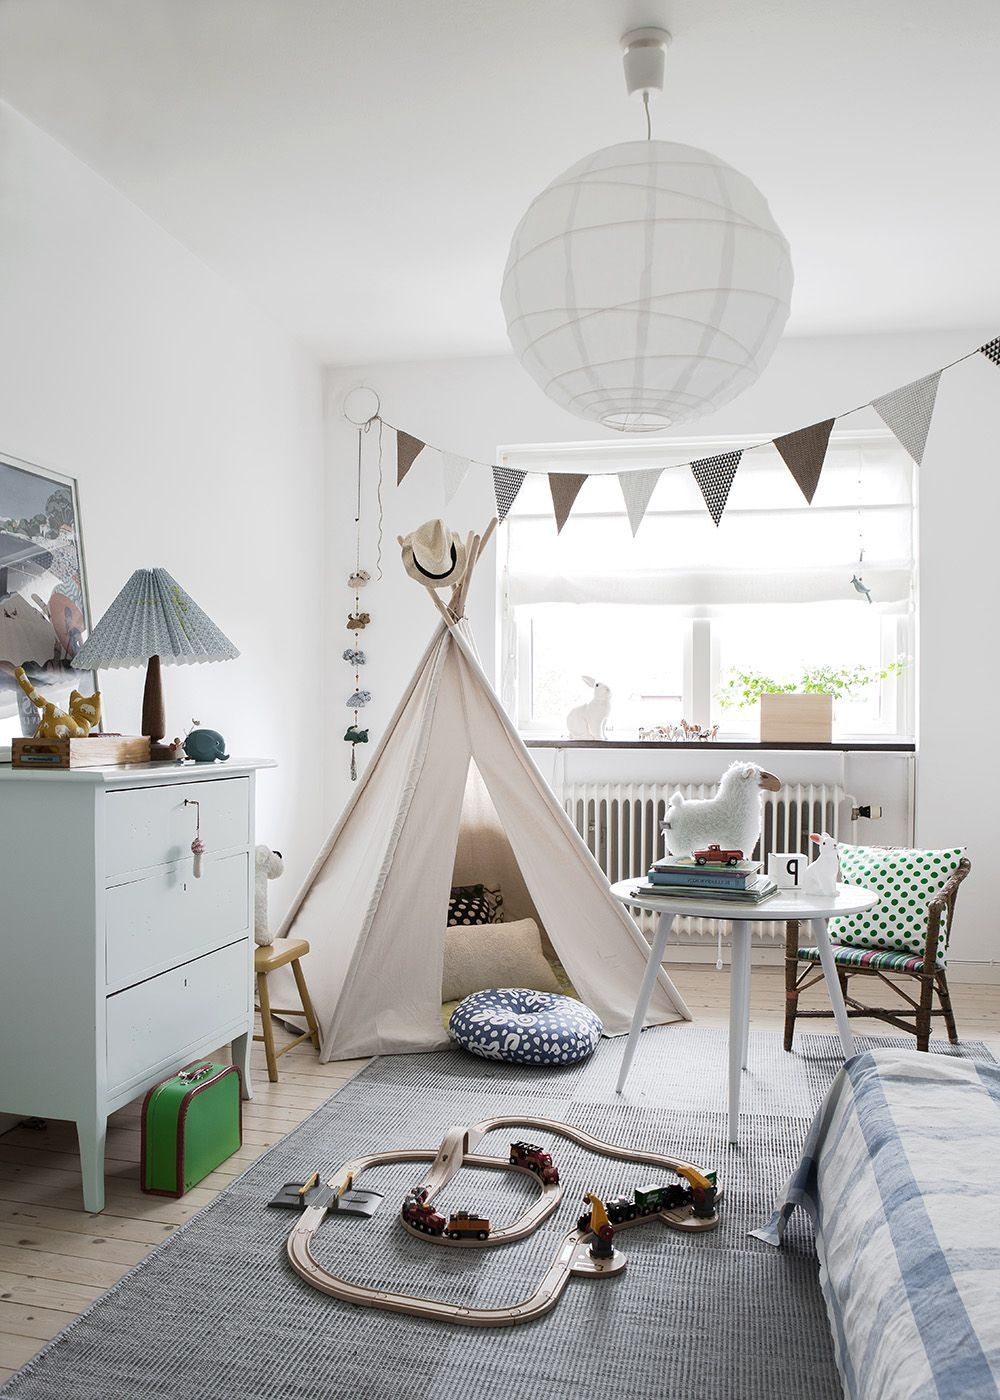 14 Tips For Choosing Furniture For Children S Rooms Plus Photos Decor Around The World In 2020 Scandinavian Kids Rooms Scandinavian Bedroom Decor Boys Room Decor